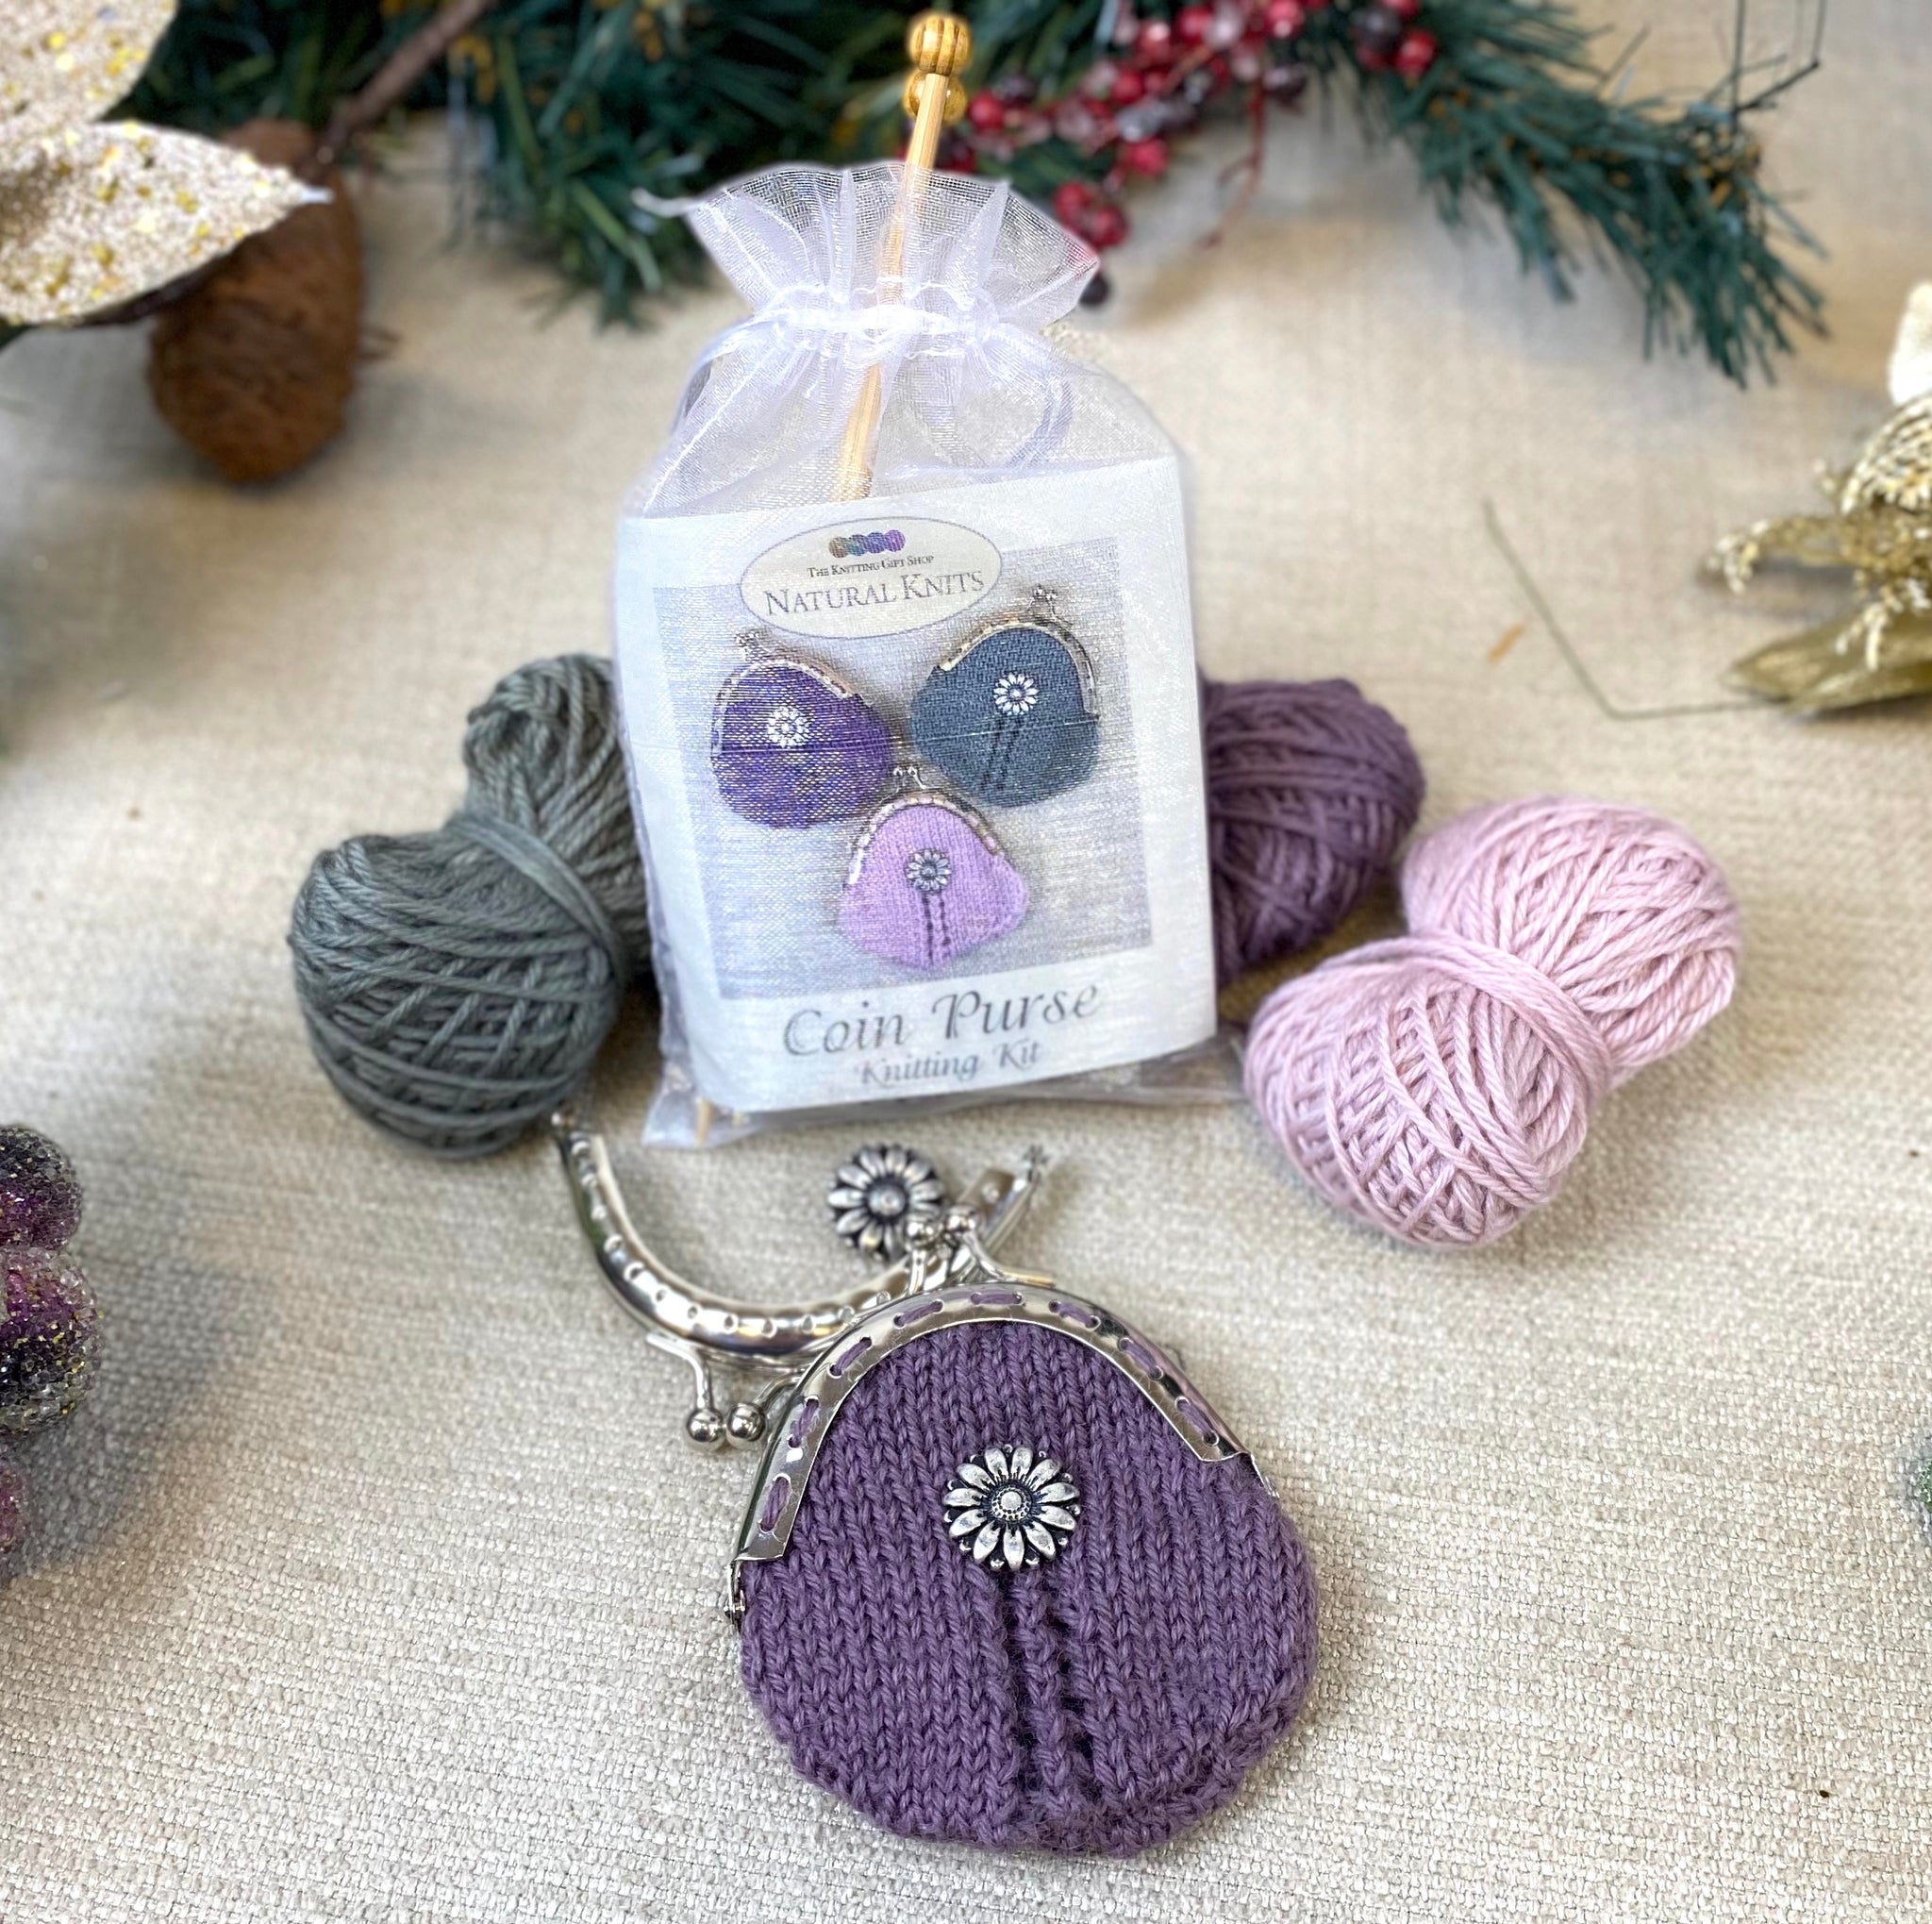 Coin Purse Knitting Kit